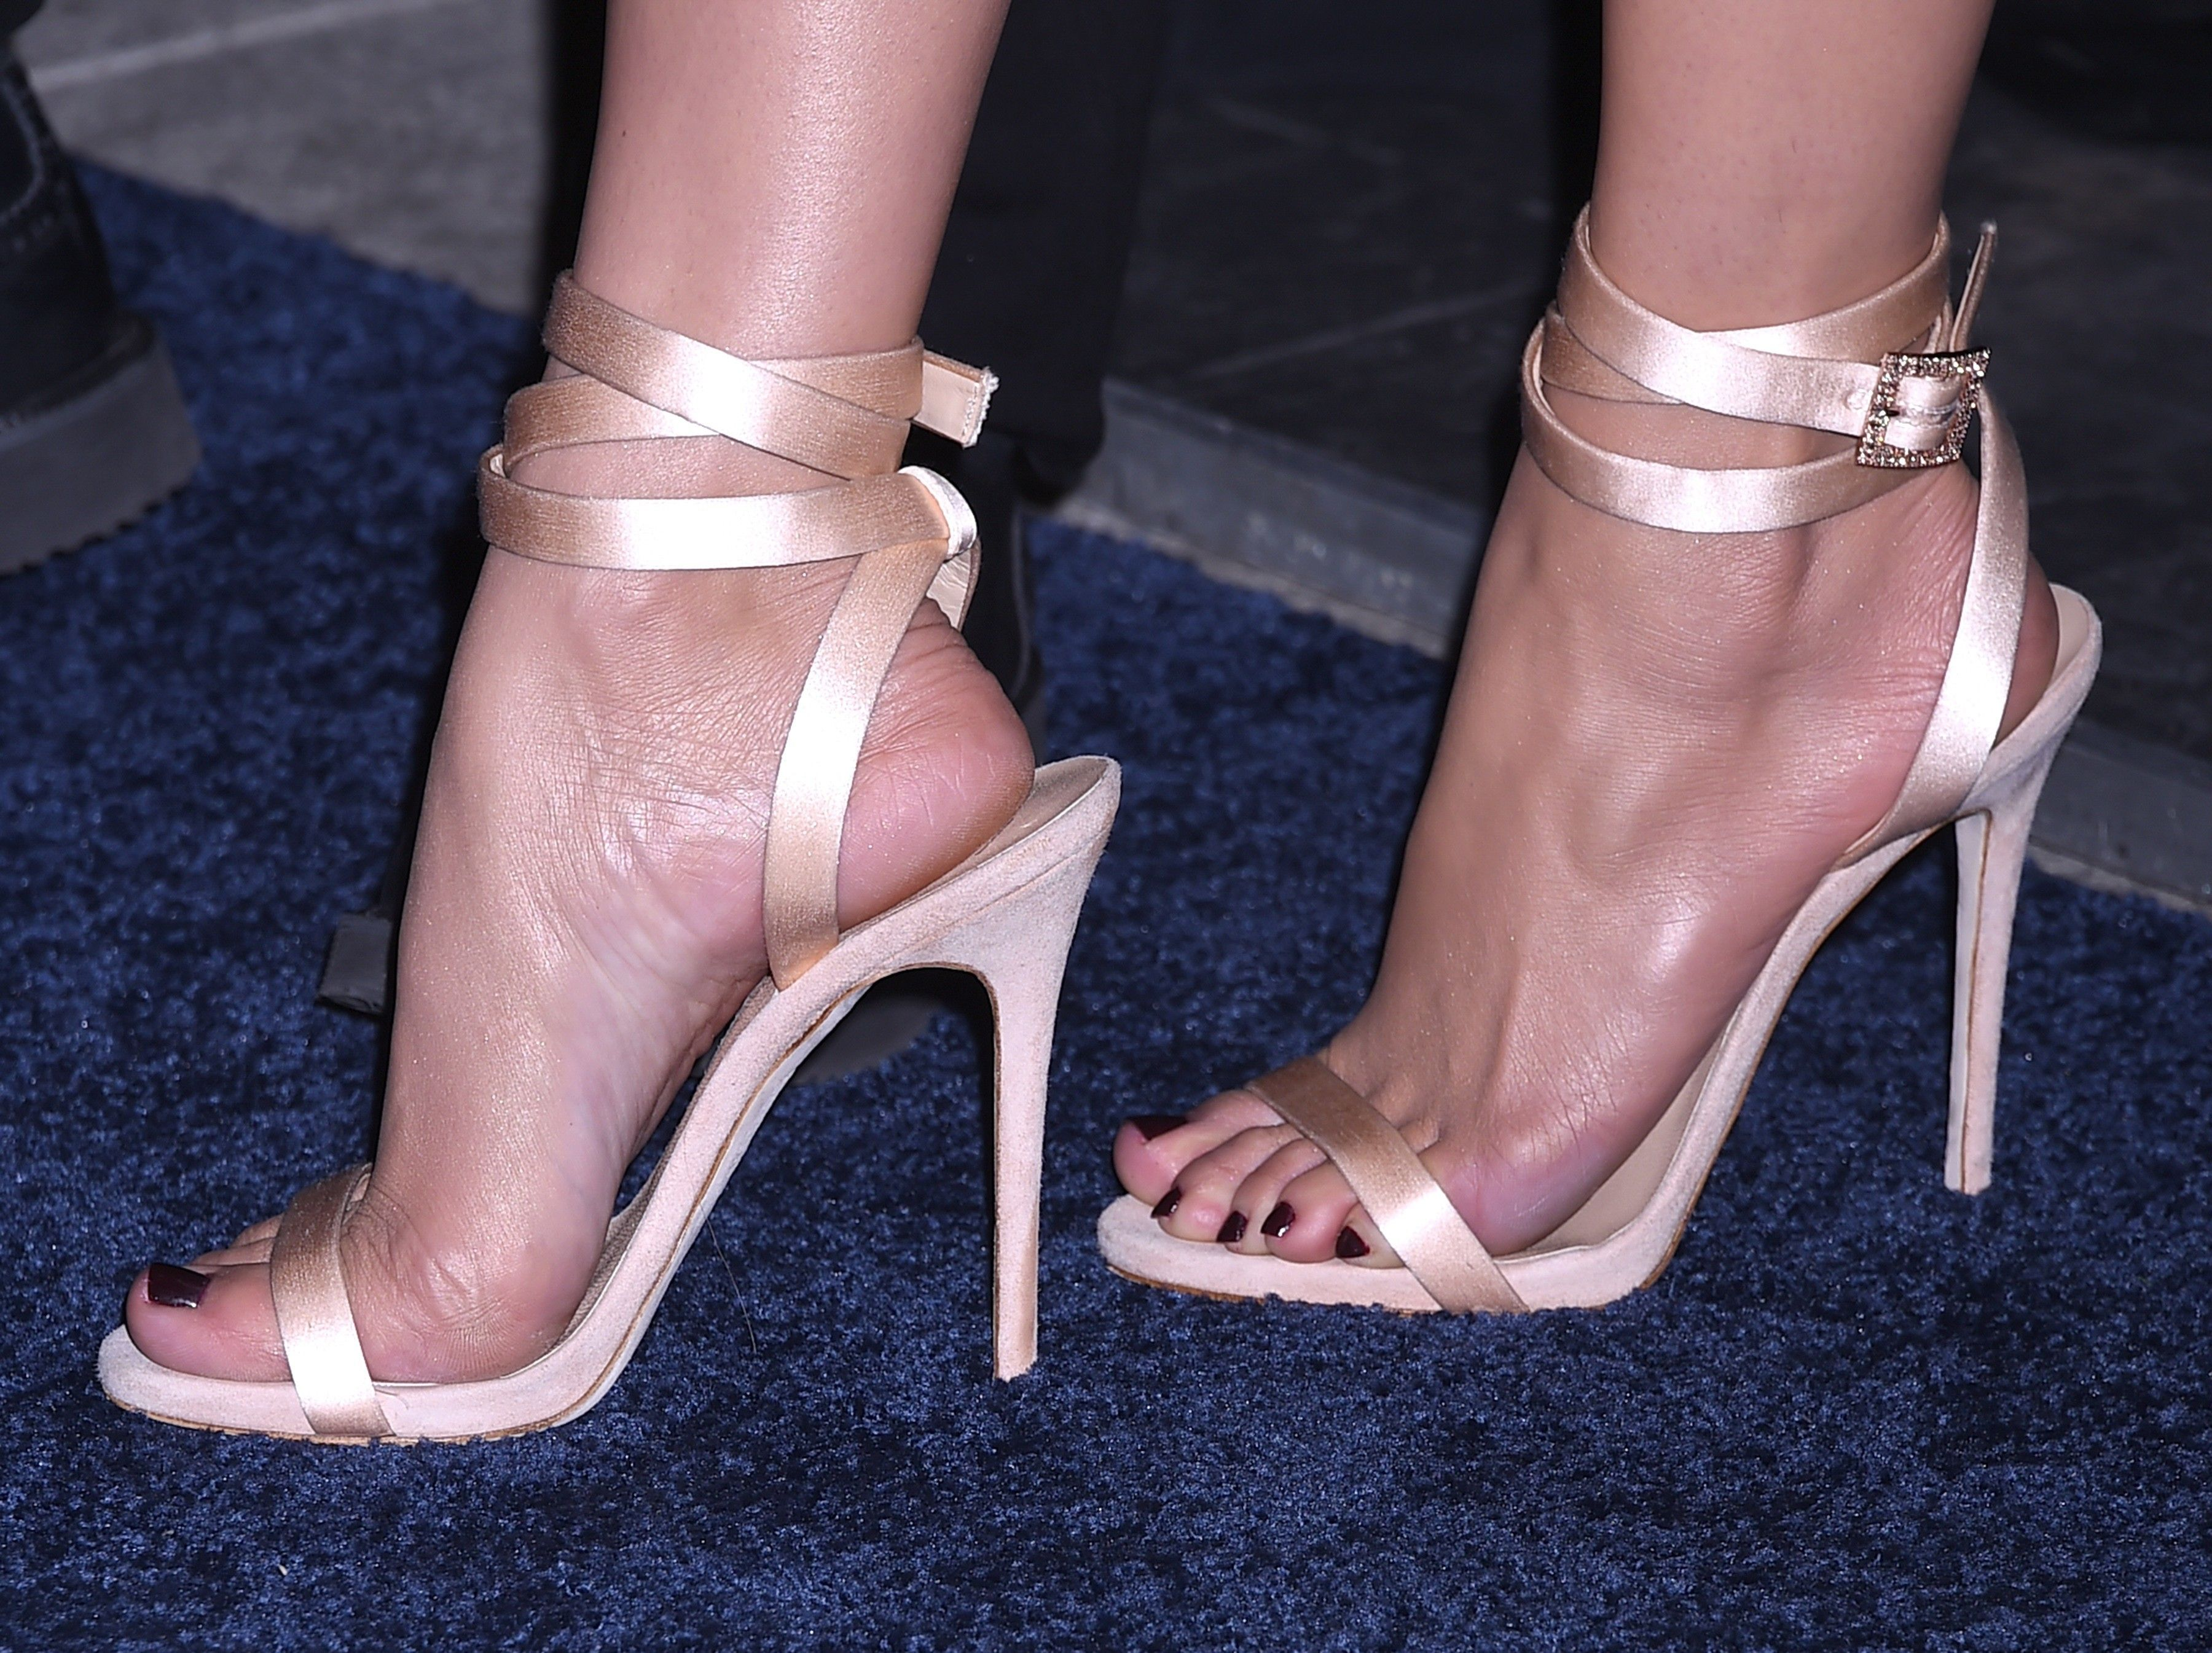 Swollen feet, cracked heels and crushed toes the times celebrity footwear went very wrong